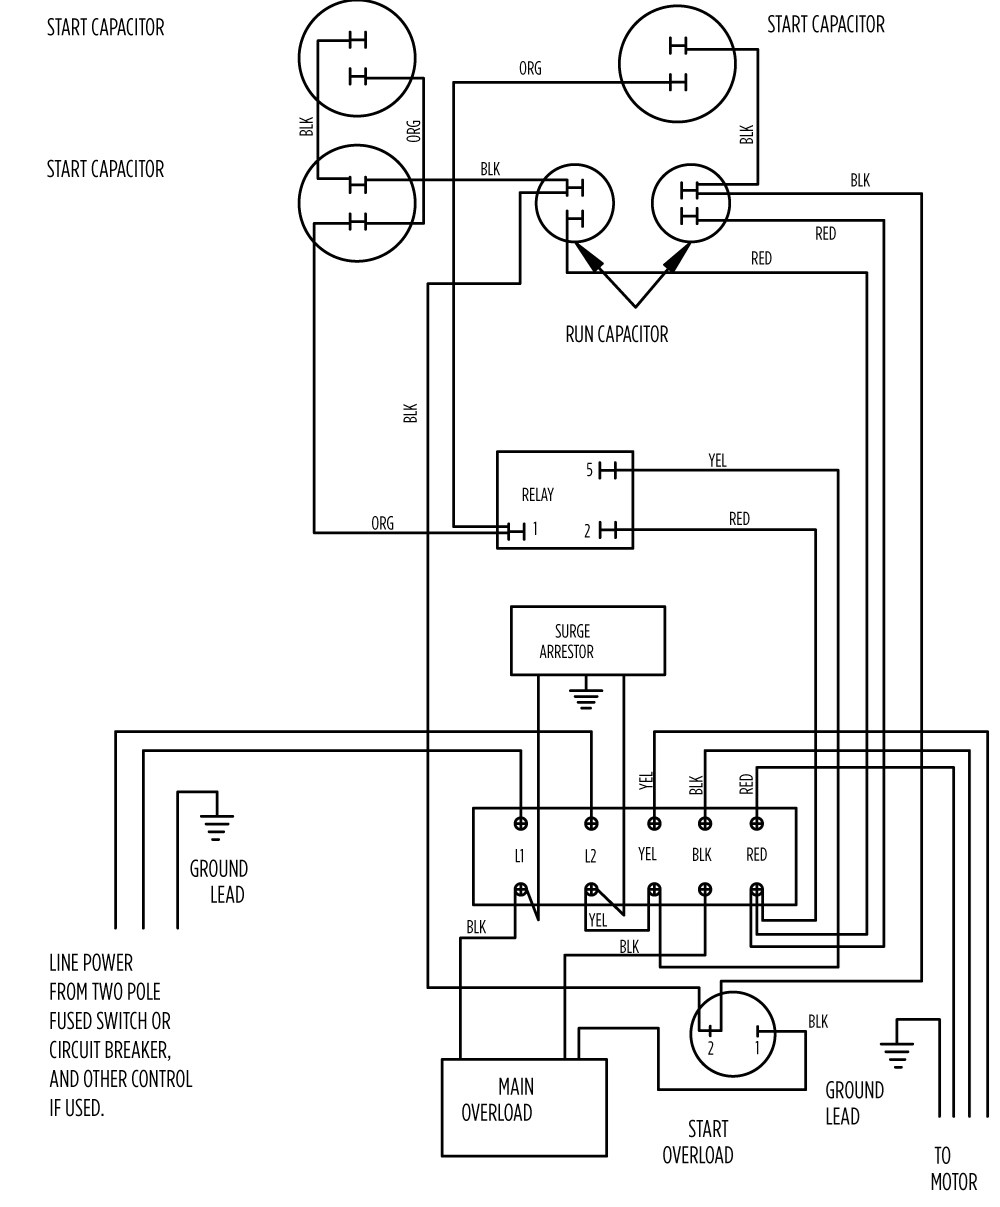 Control Wiring Schematics Quick Start Guide Of Diagram Star Delta Motor Starter Pdf Aim Manual Page 57 Single Phase Motors And Controls Rh Franklinwater Com Symbols Vfd